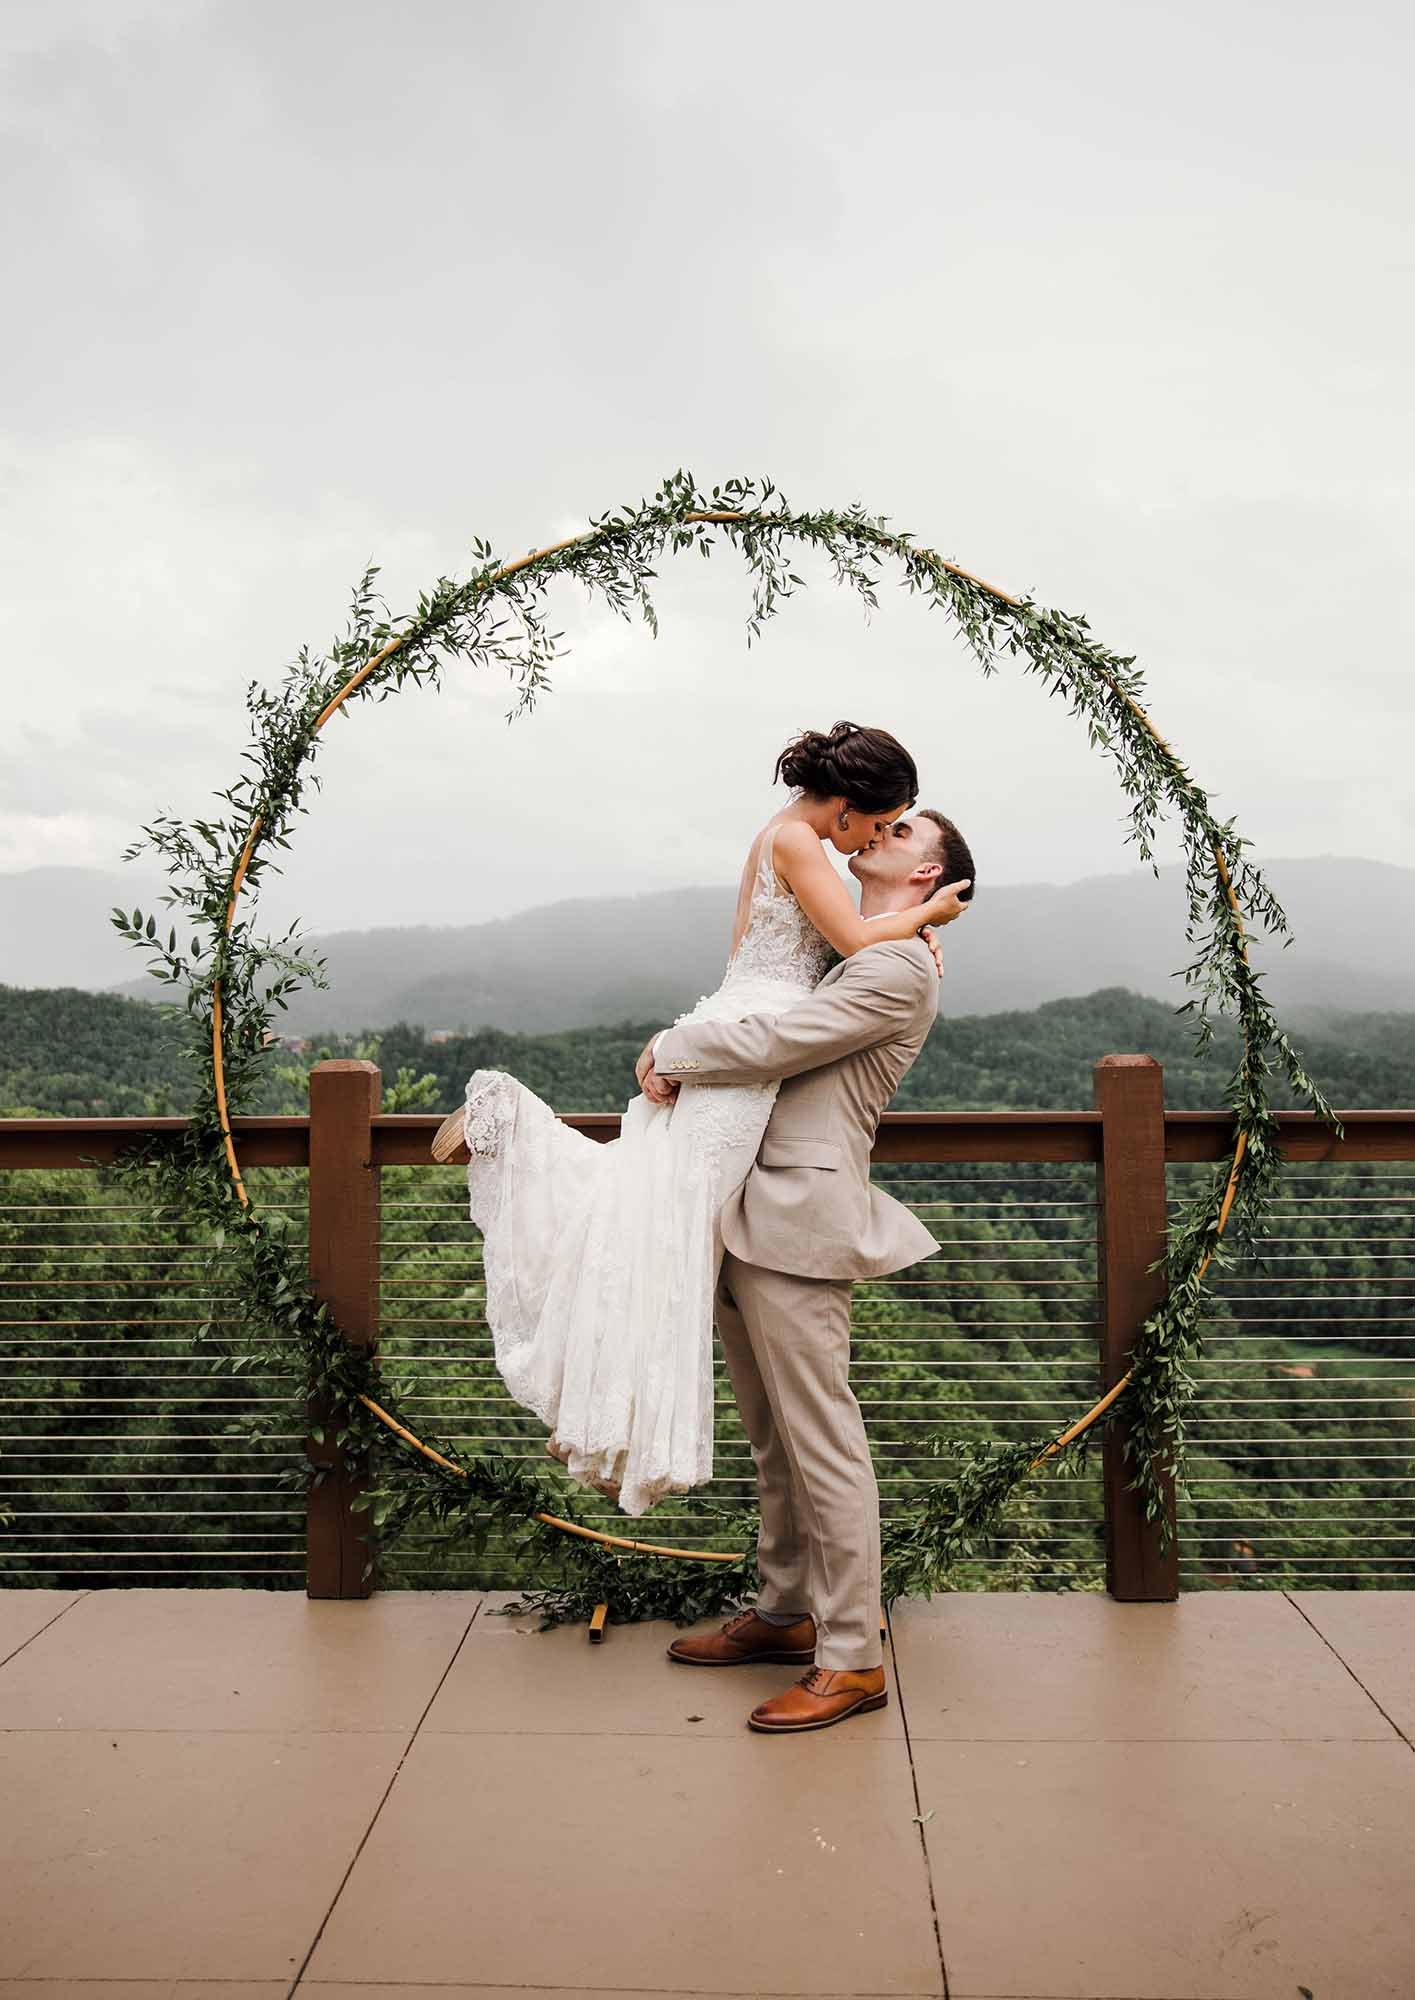 Echelon Florist at The Magnolia Wedding Venue in Pigeon Forge, Tennessee